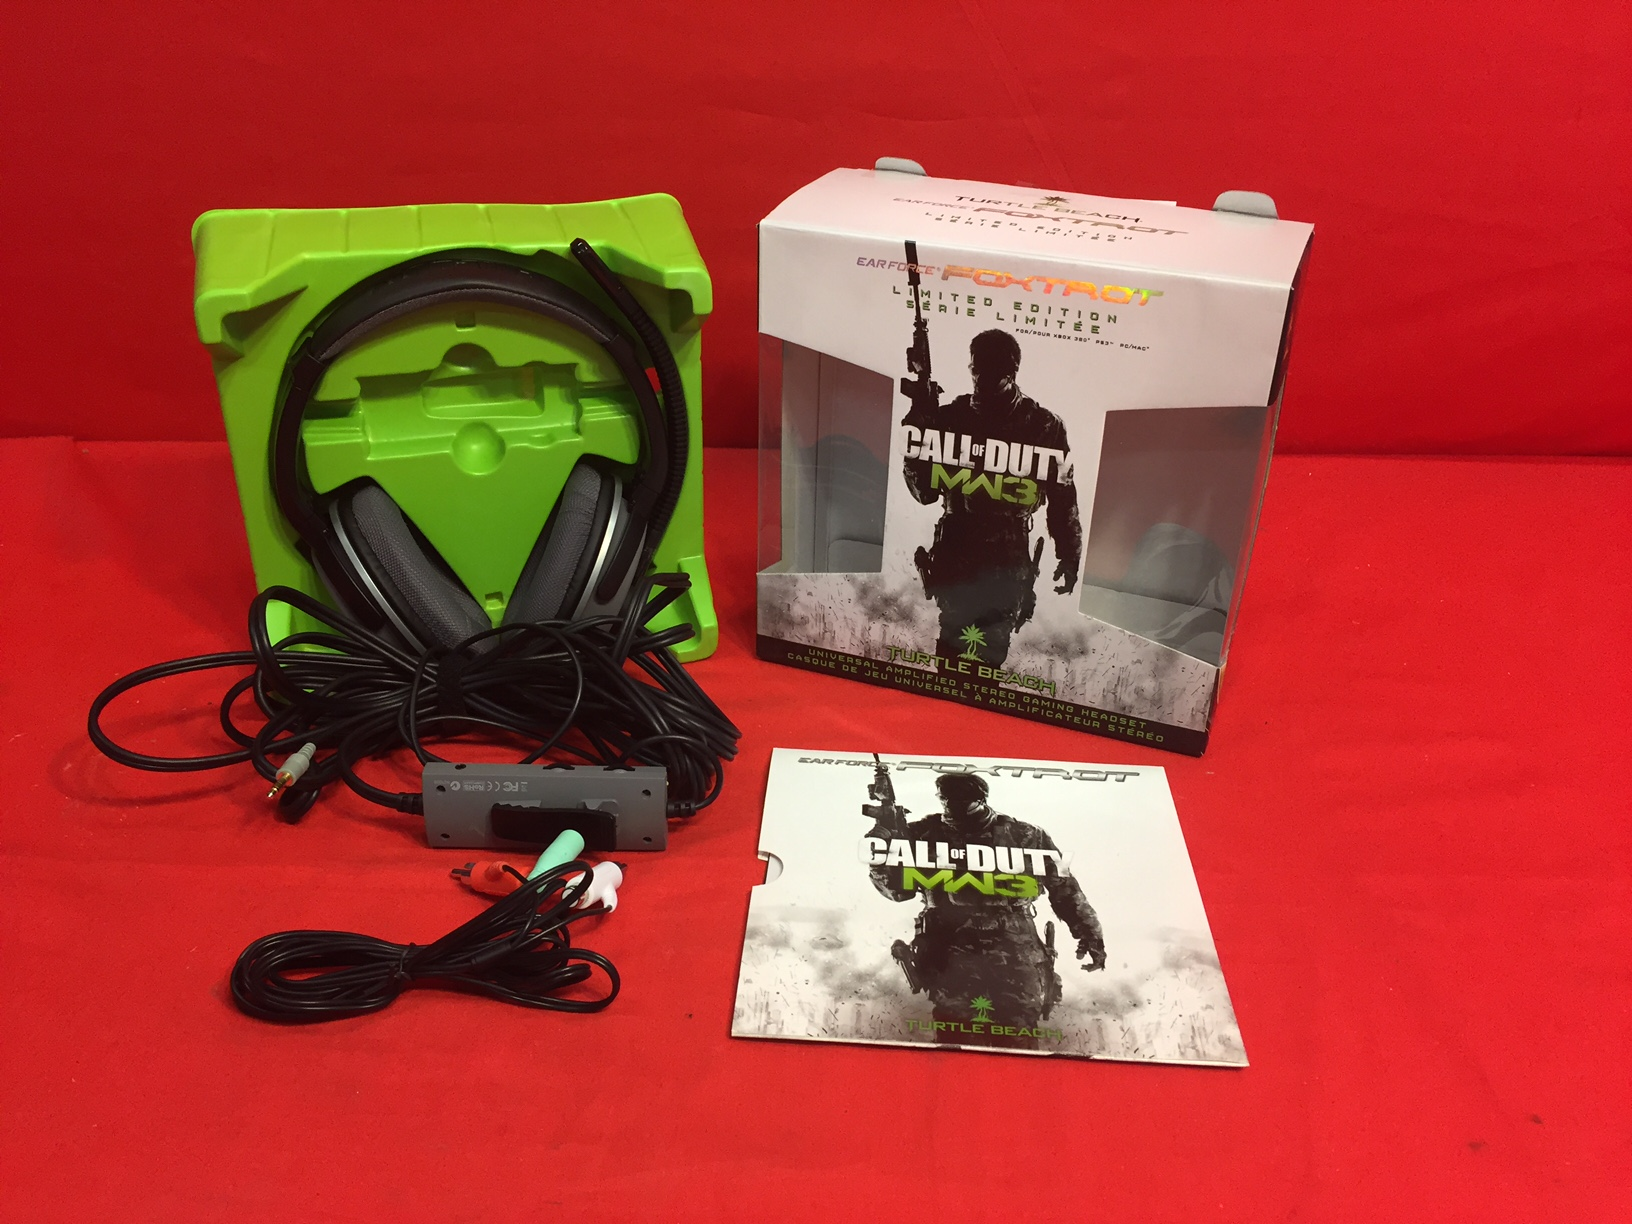 Turtle Beach Ear Force Foxtrot Call Of Duty Stereo Gaming Headset For